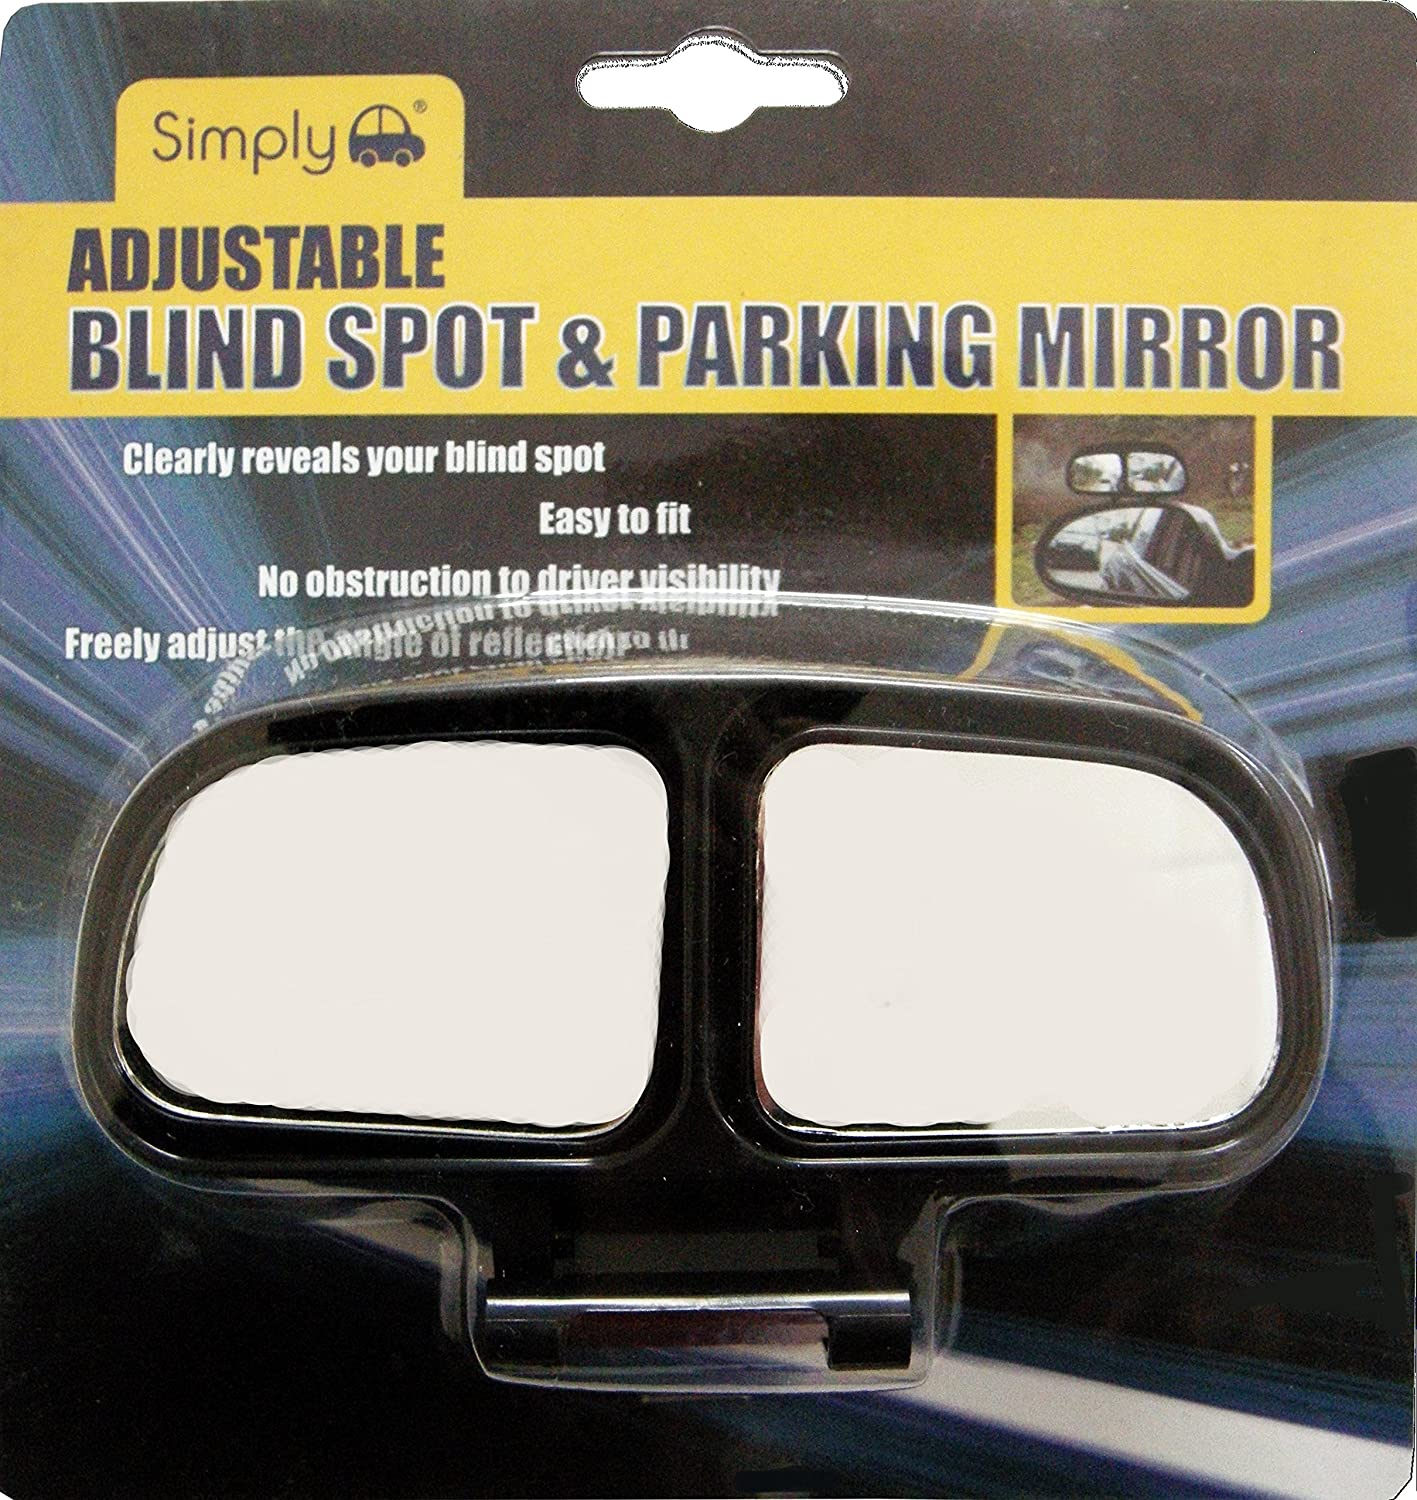 Simply BS009 Adjustable Clip-on Blind Spot Car Mirror, Increase Visibility, Universal Easy to Fit & Remove